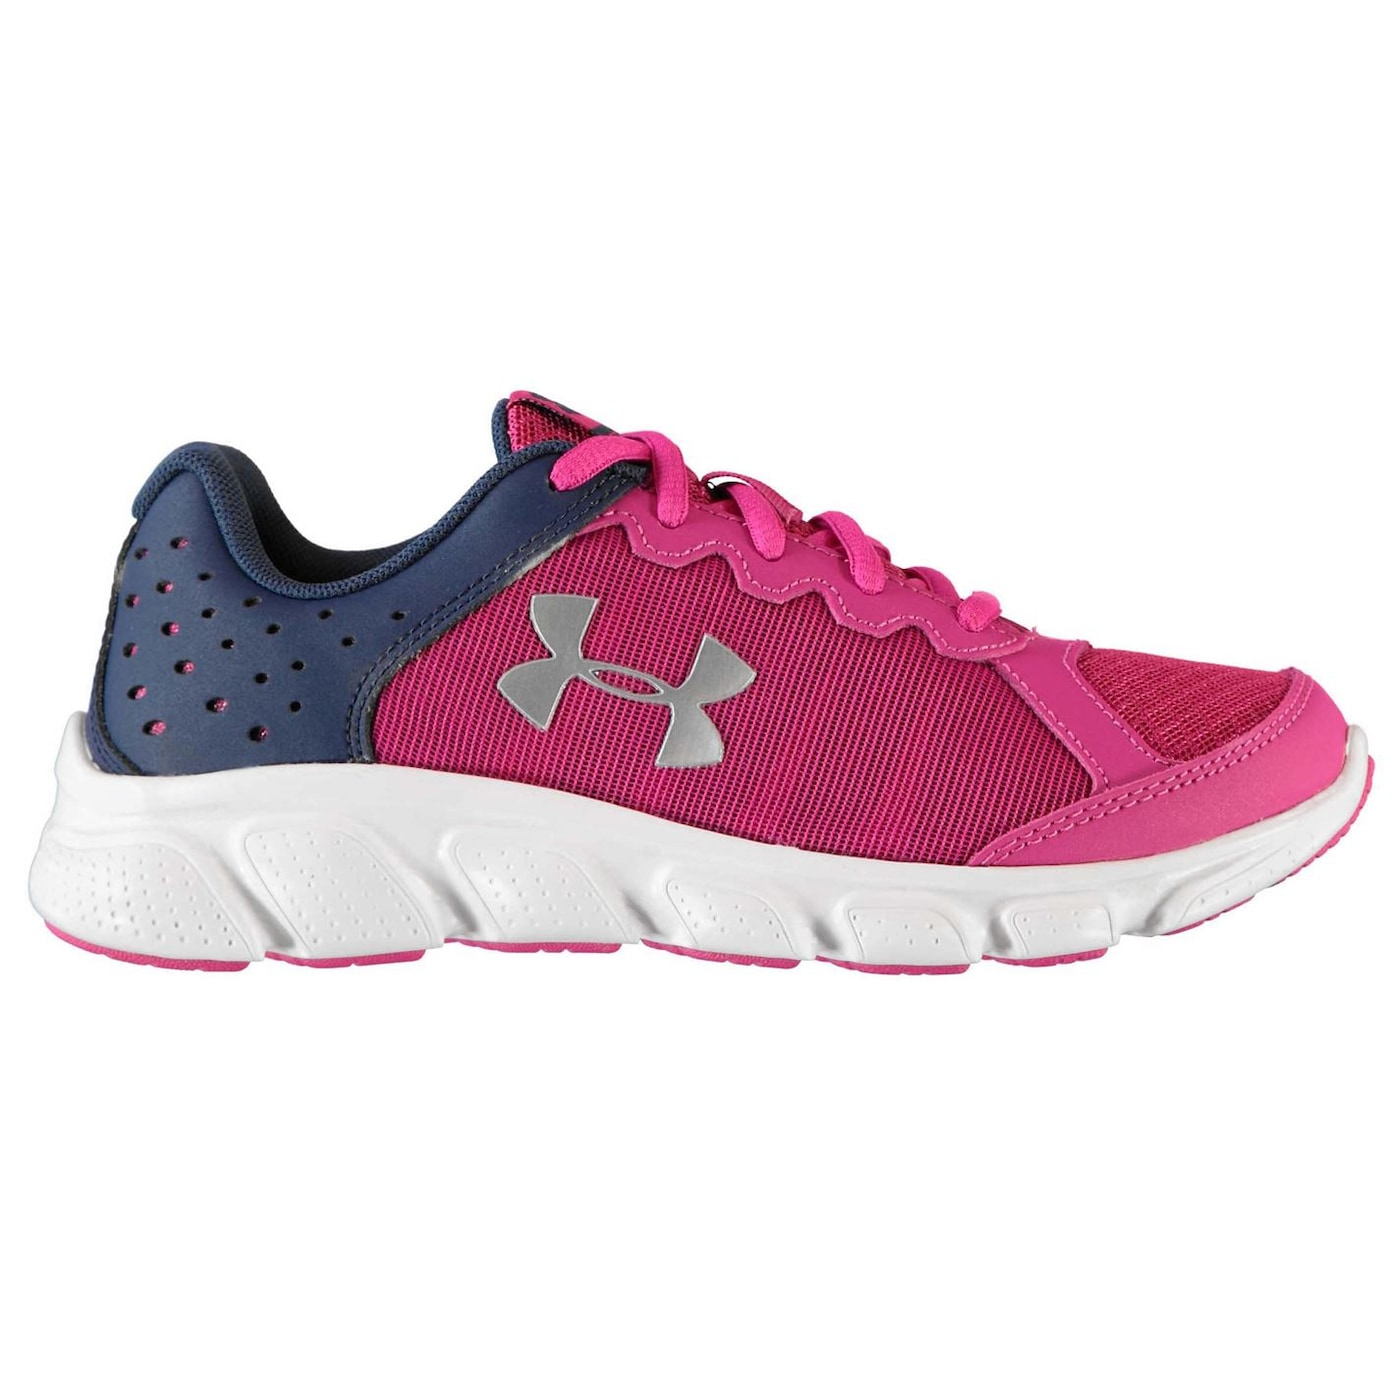 Reebok Classic Leather CTM Tech Childrens Girls Trainers